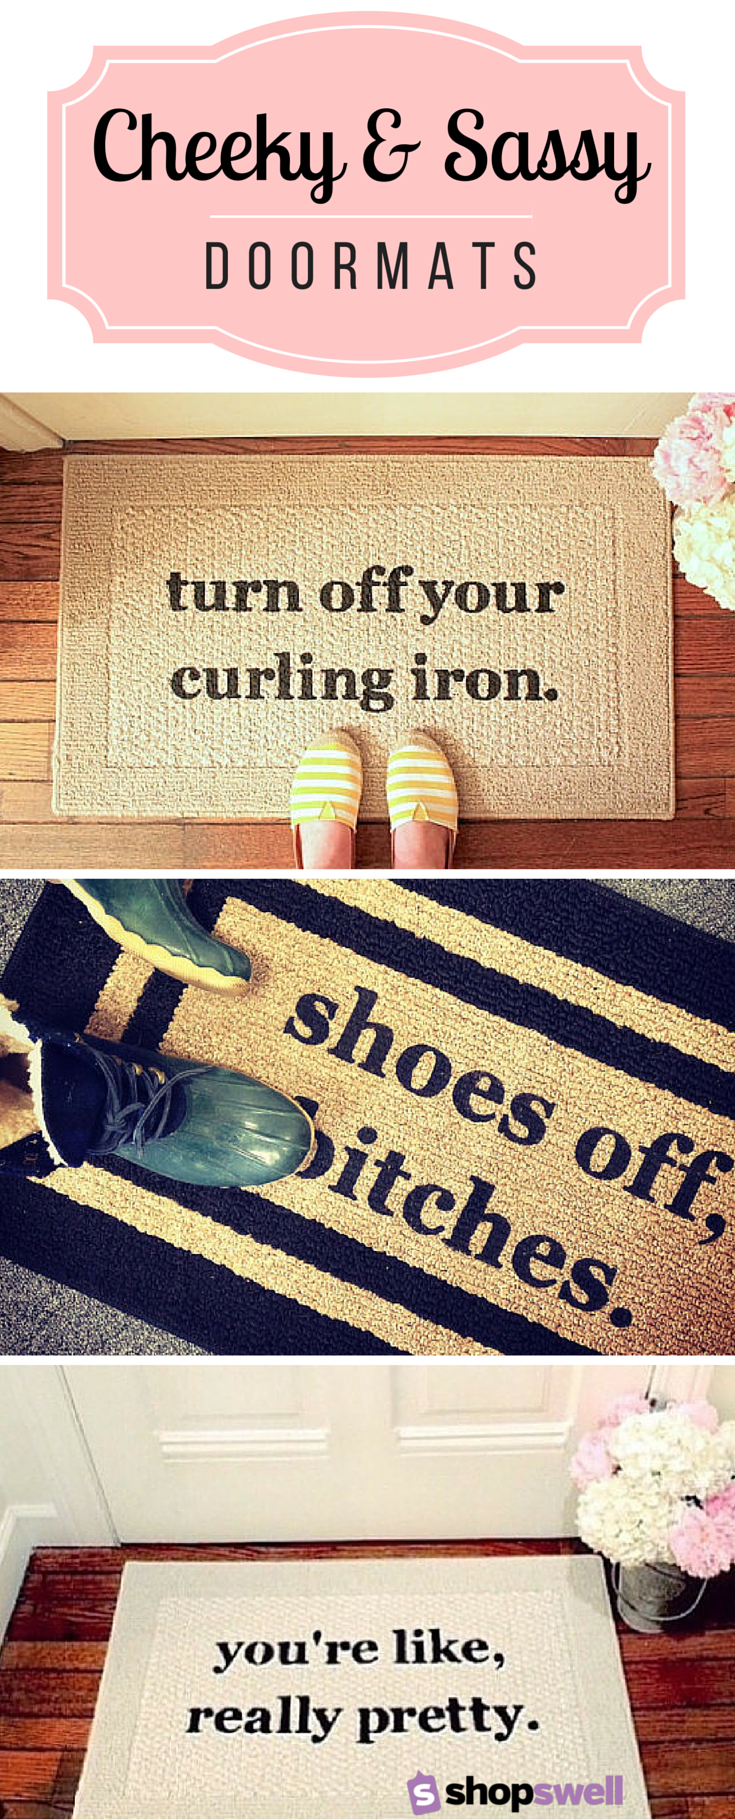 35 Door Mats To Give Your Guests A Warm Welcome For The